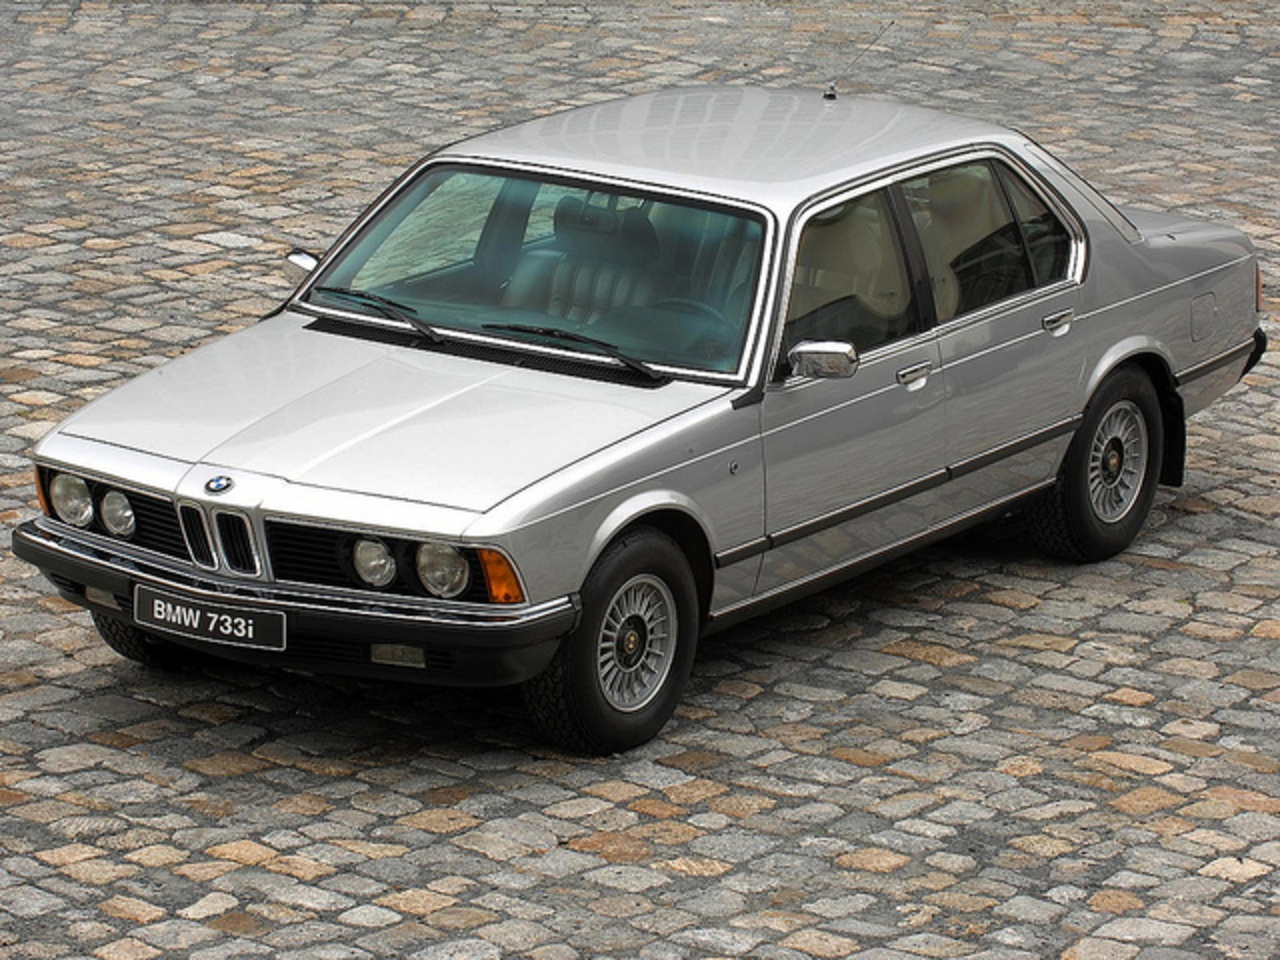 Topworldauto Photos Of Bmw 733i Photo Galleries 1983 E23 Car Electrical Wiring Diagram Security Flickr Sharing